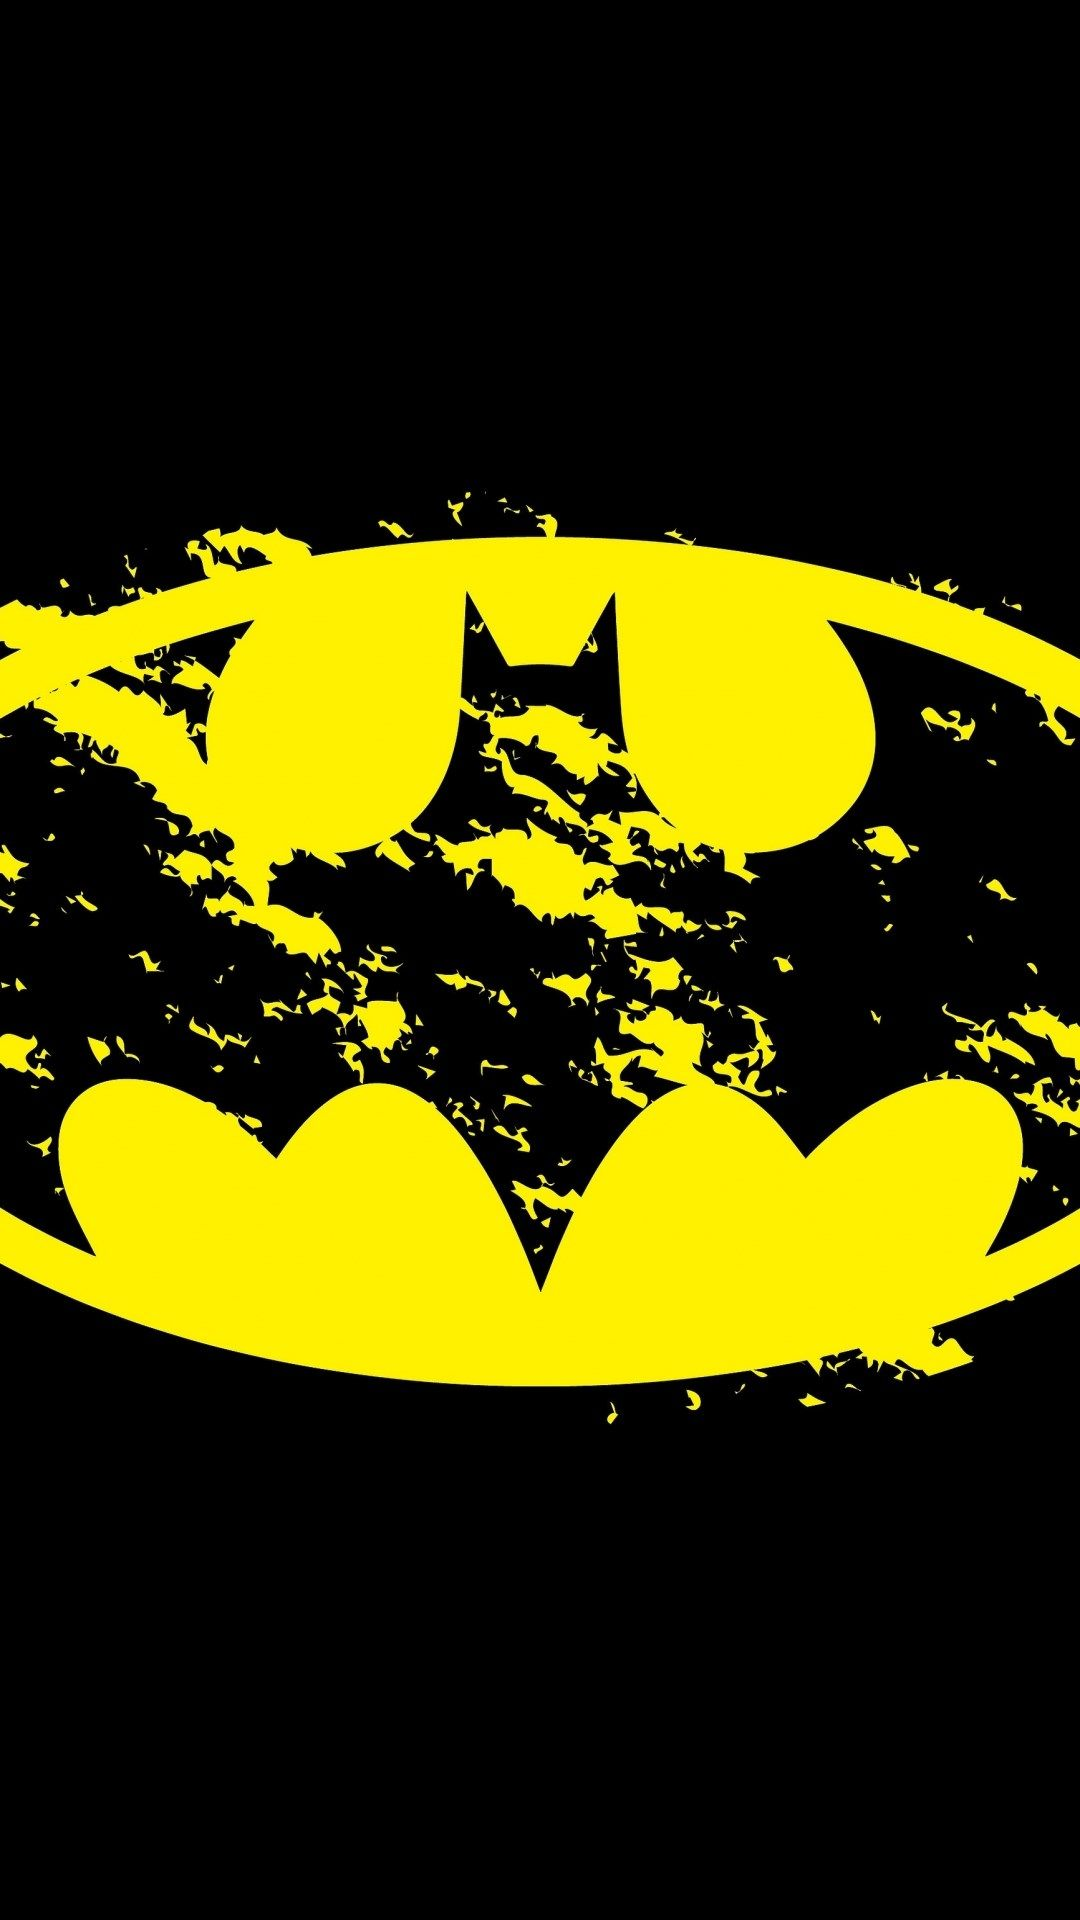 batman logo iphone wallpapers Batman wallpaper iphone